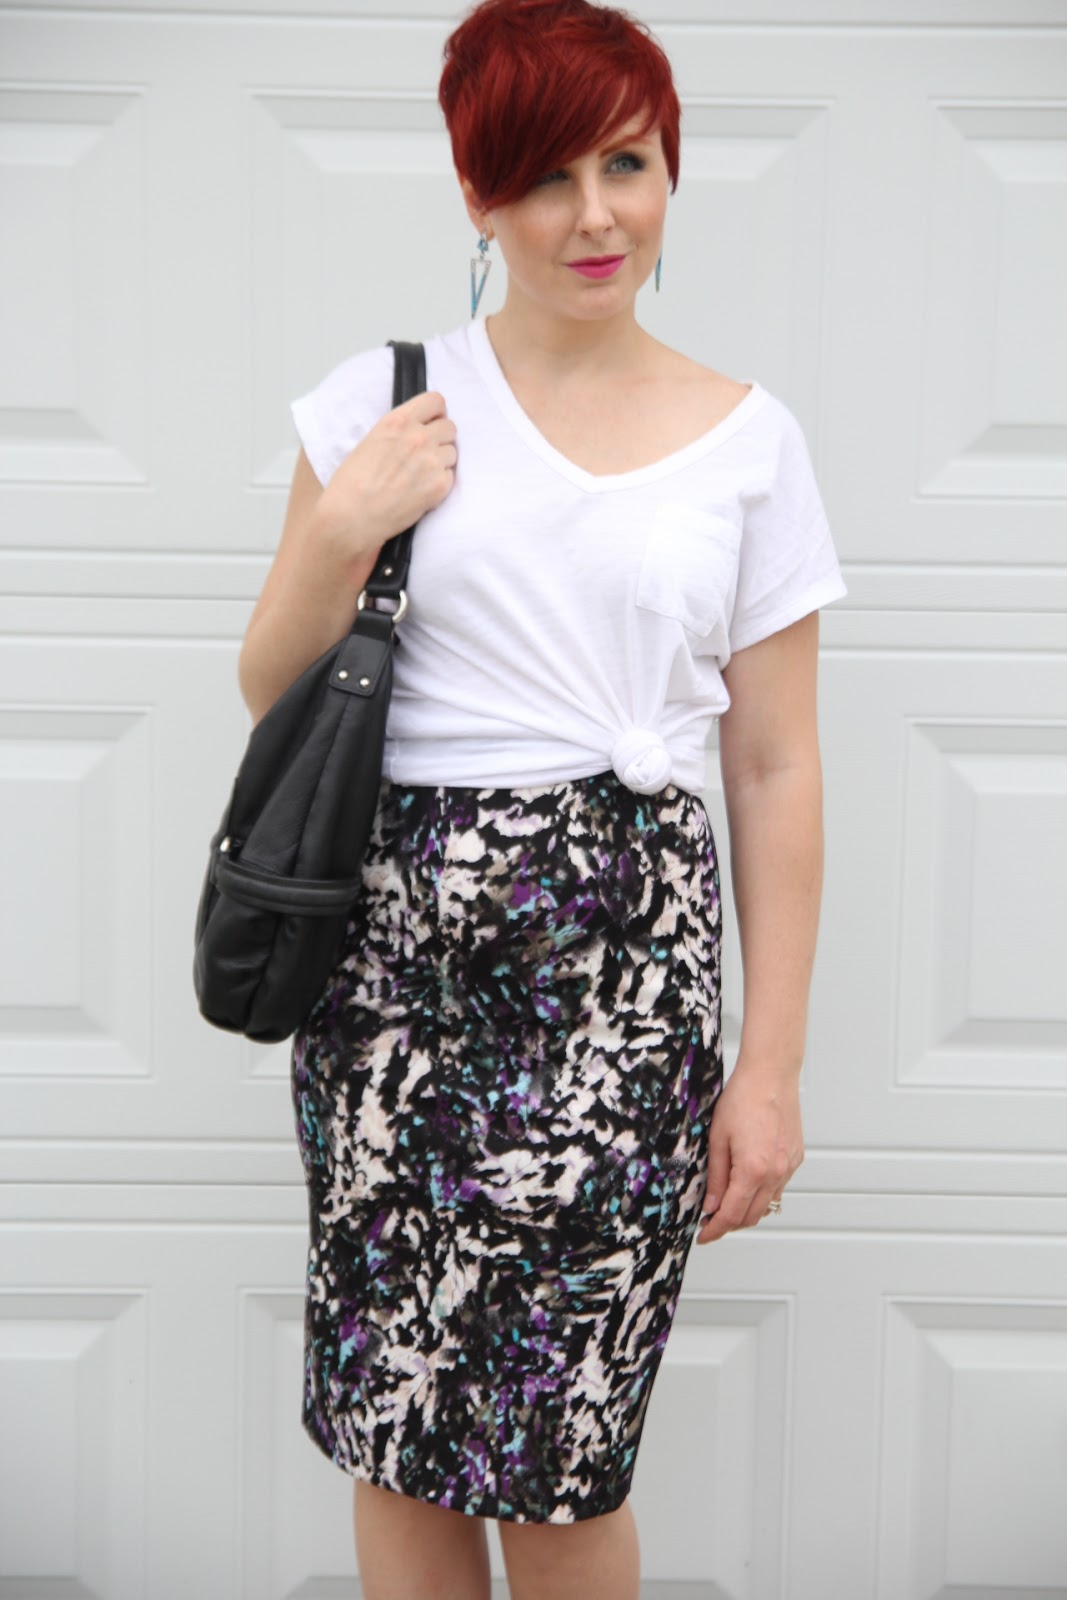 thrift and shout cute outfit of the day pencil skirt